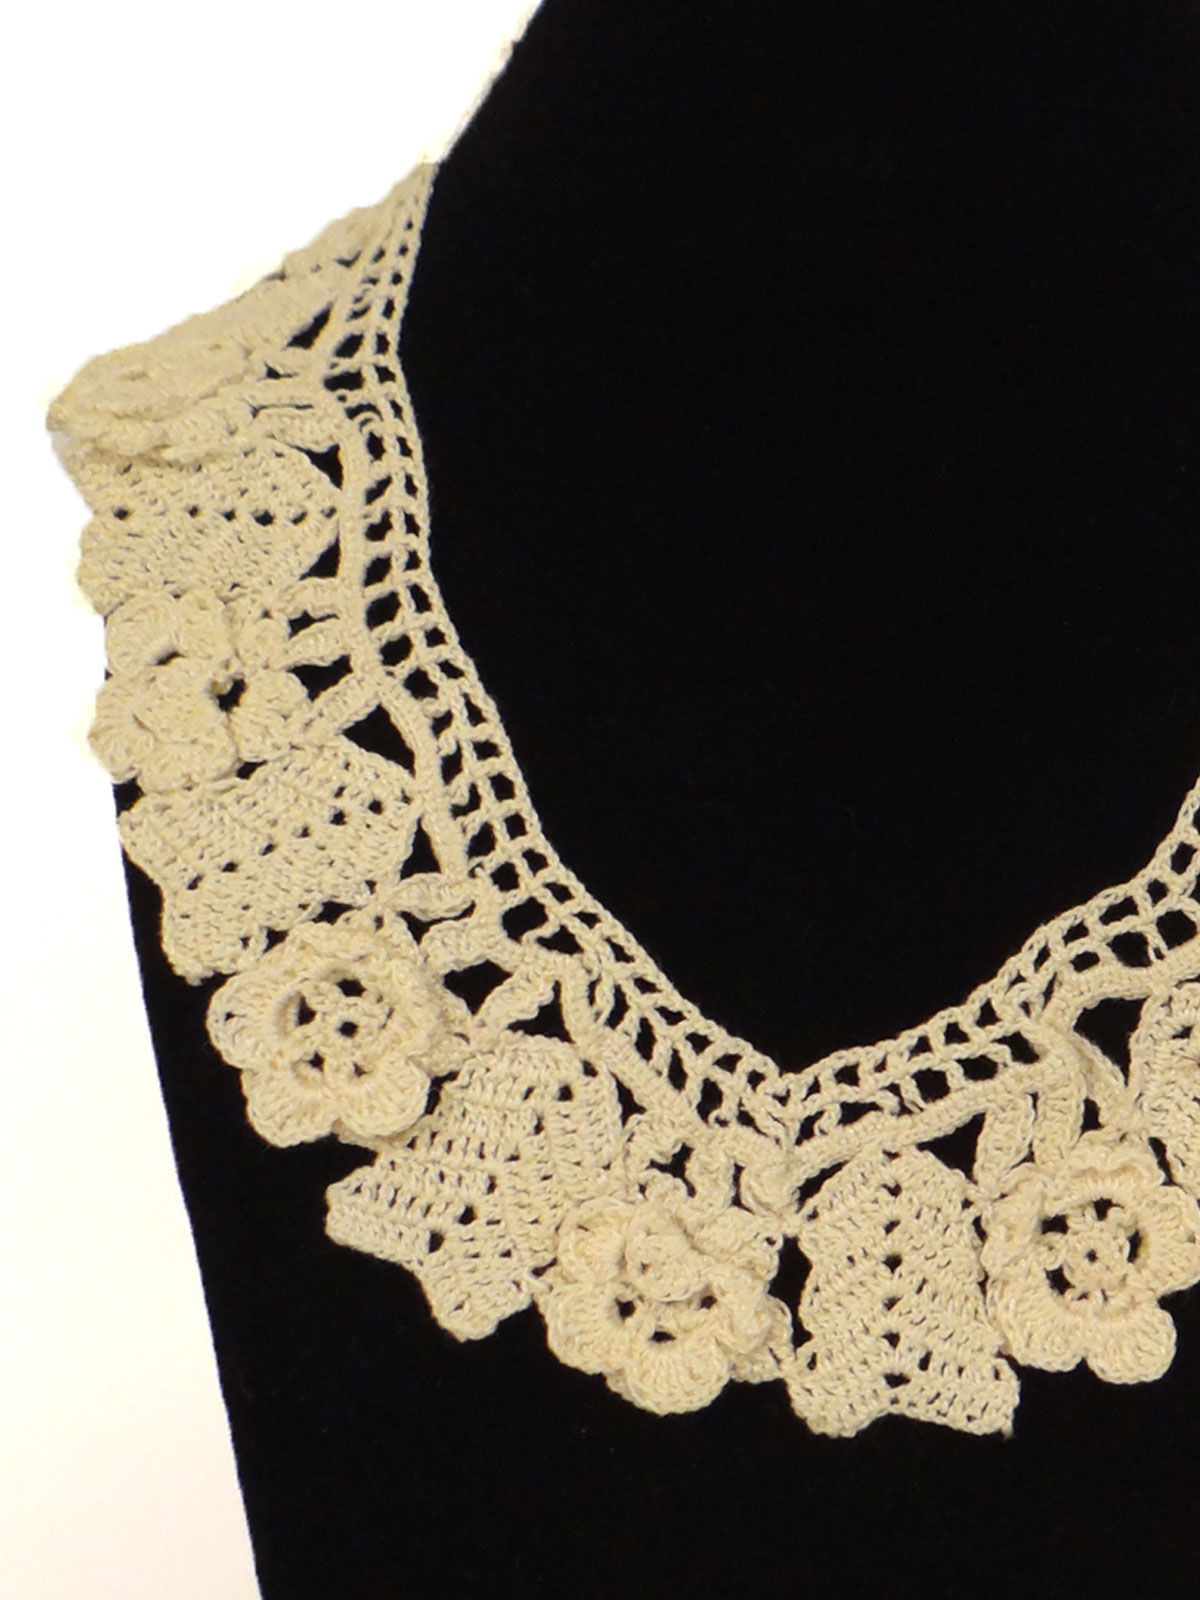 Off-white crochet fabric necklace